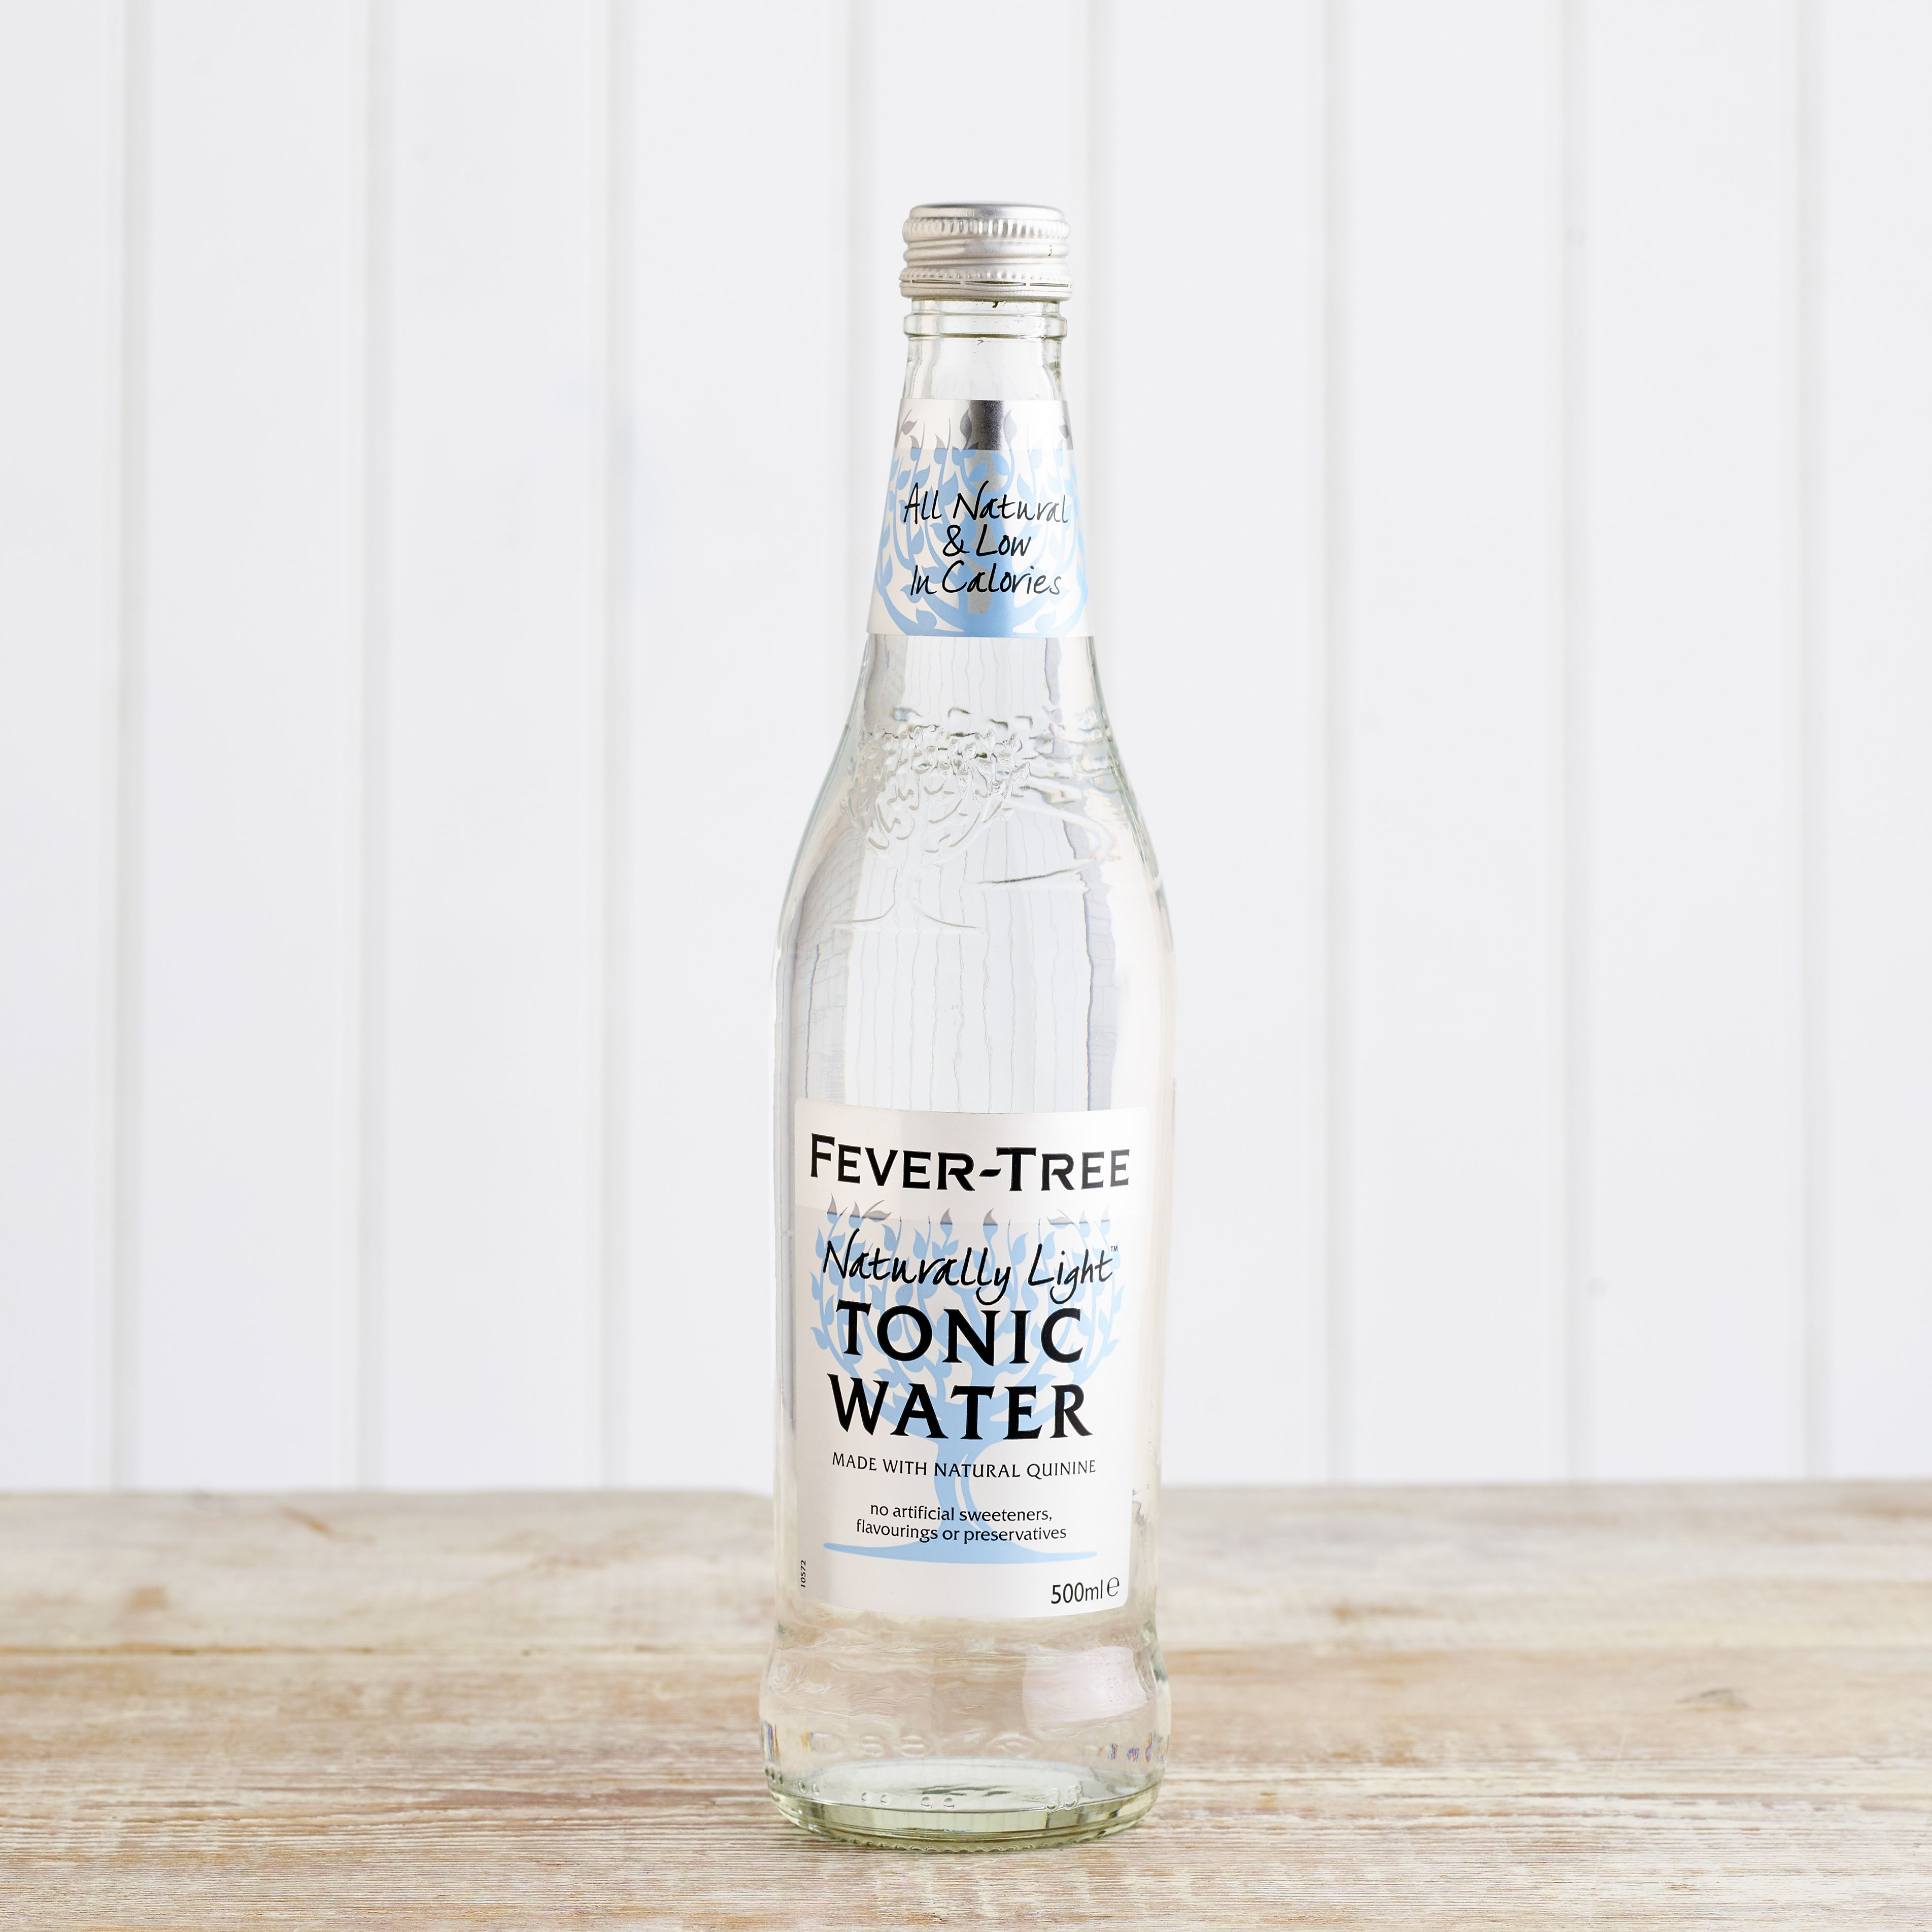 Fever-Tree Naturally Light Tonic Water, 500ml